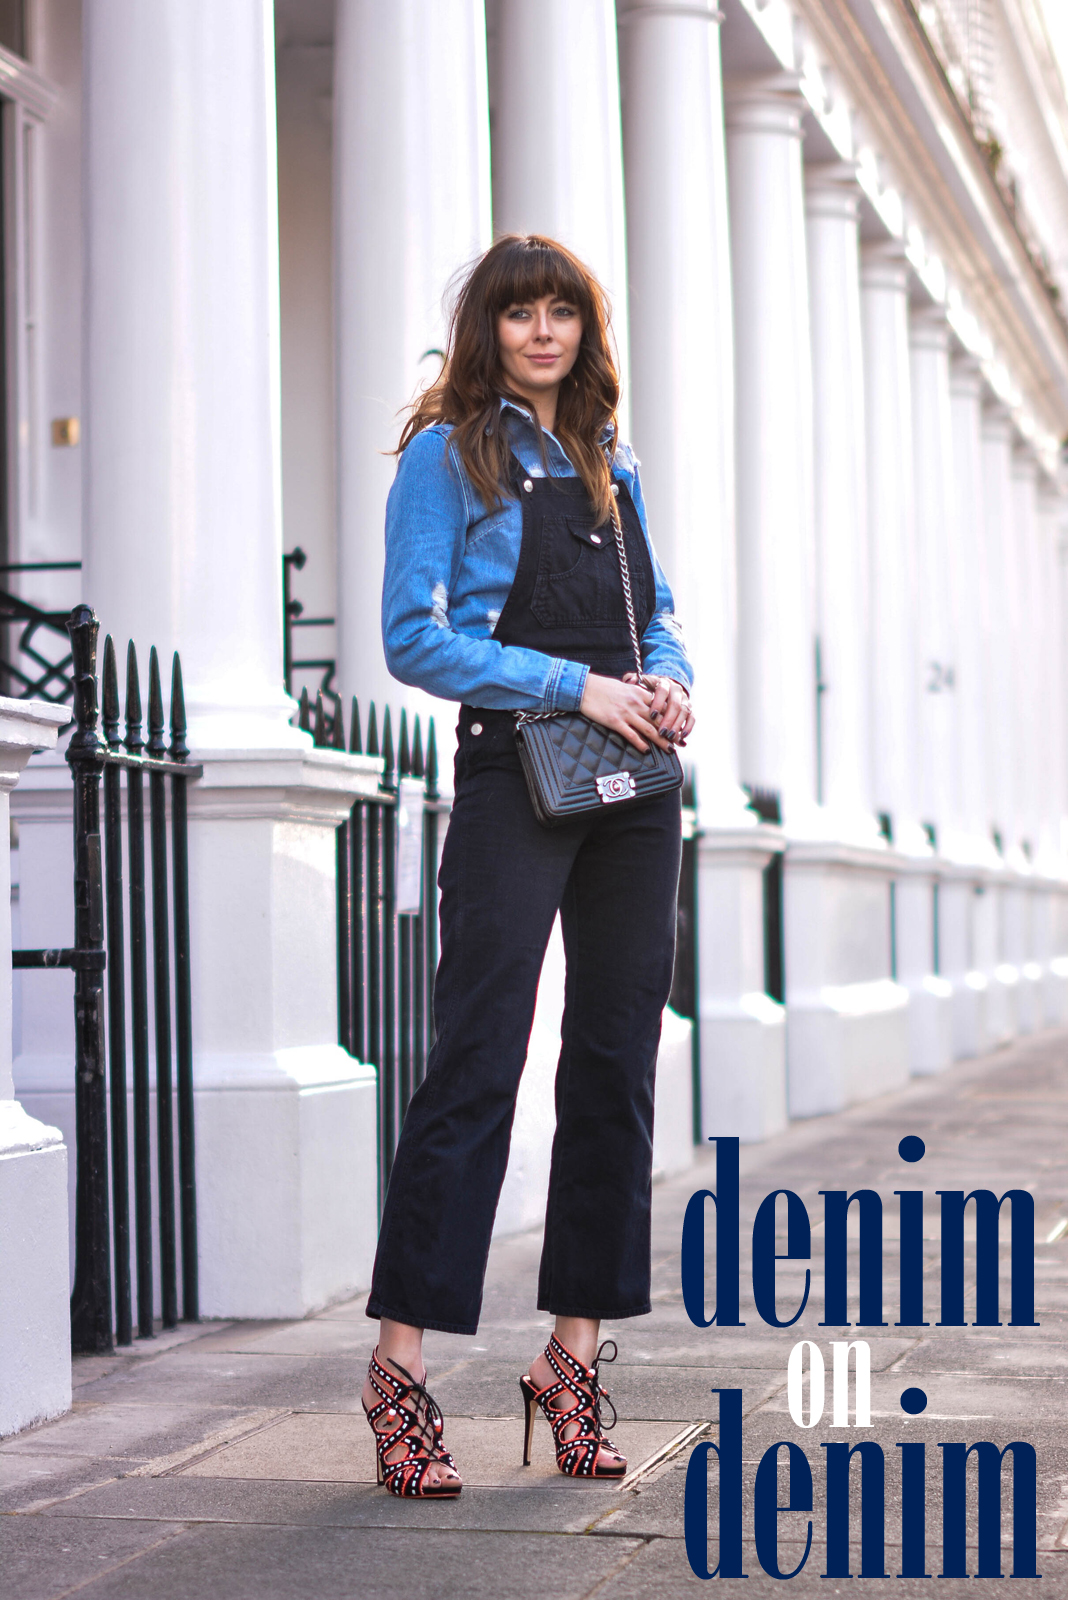 EJSTYLE - Emma Hill, fashion blogger, double denim, alexa chung x AG denim dungarees, Henry Holland denim shirt, house of holland denim shirt, Miss KG Ennis heels, OOTD